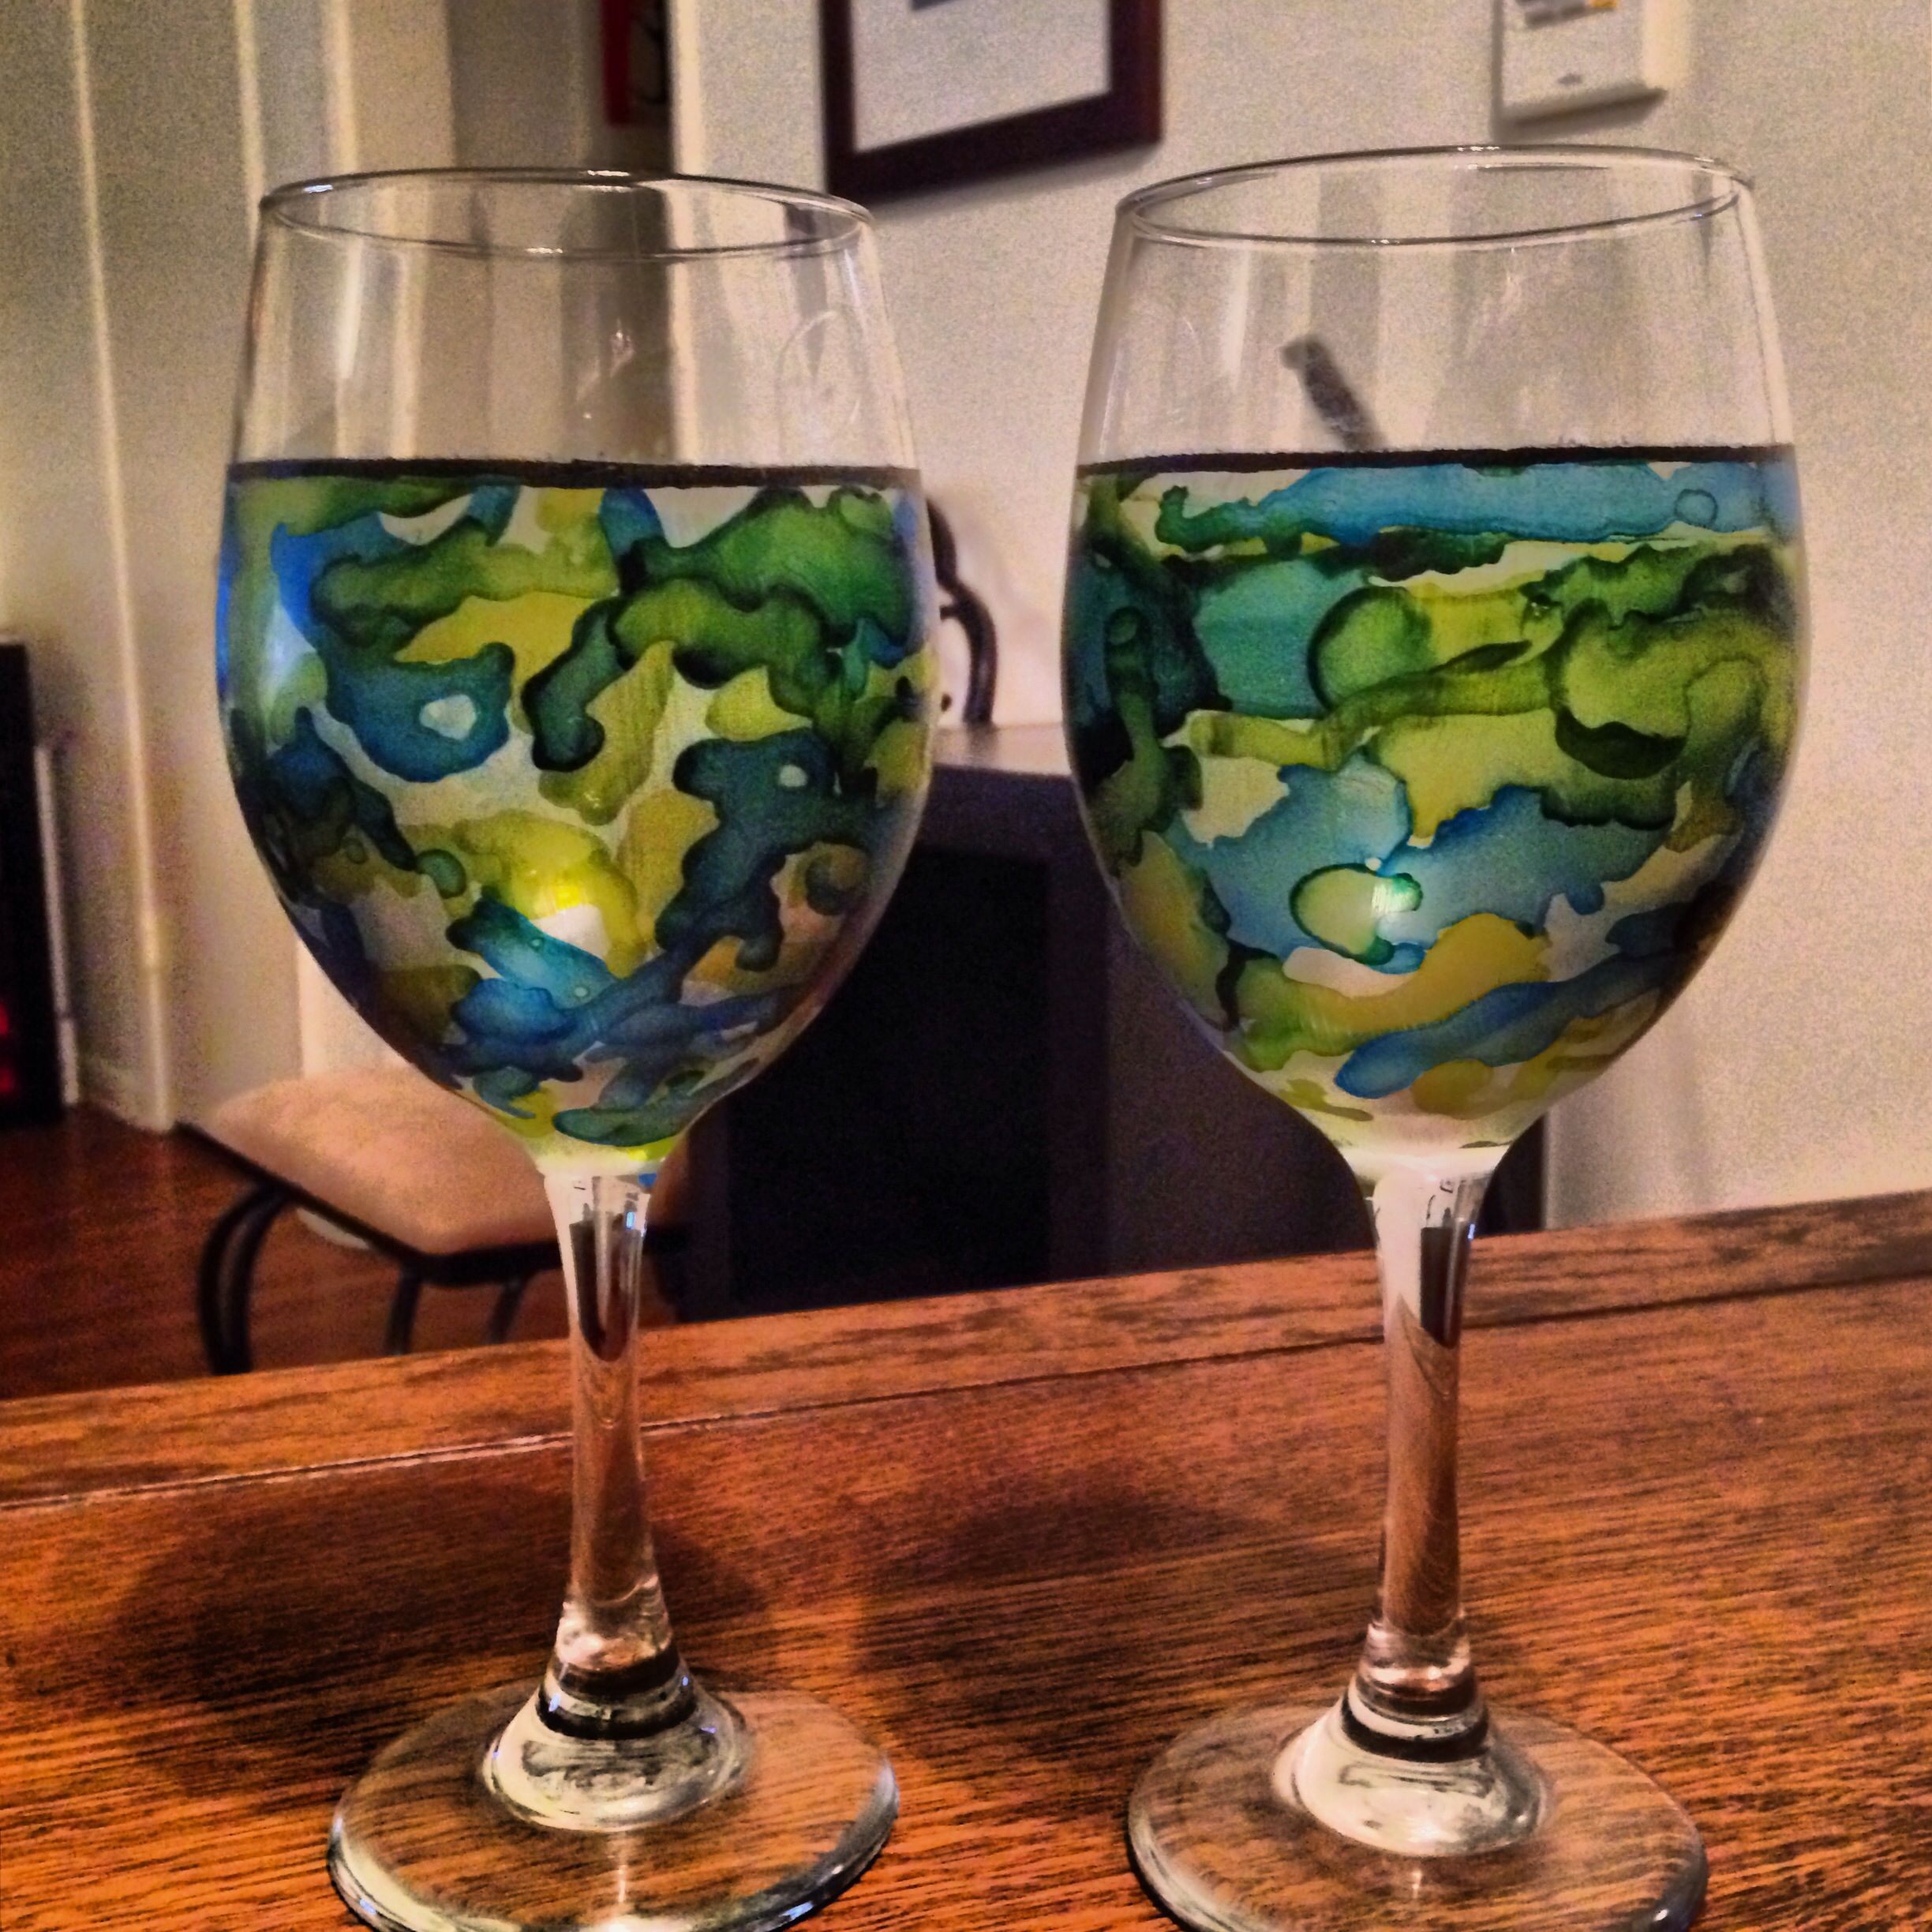 Wine Glass Ideas Alcohol Ink On Wine Glasses Art Project Ideas Alcohol